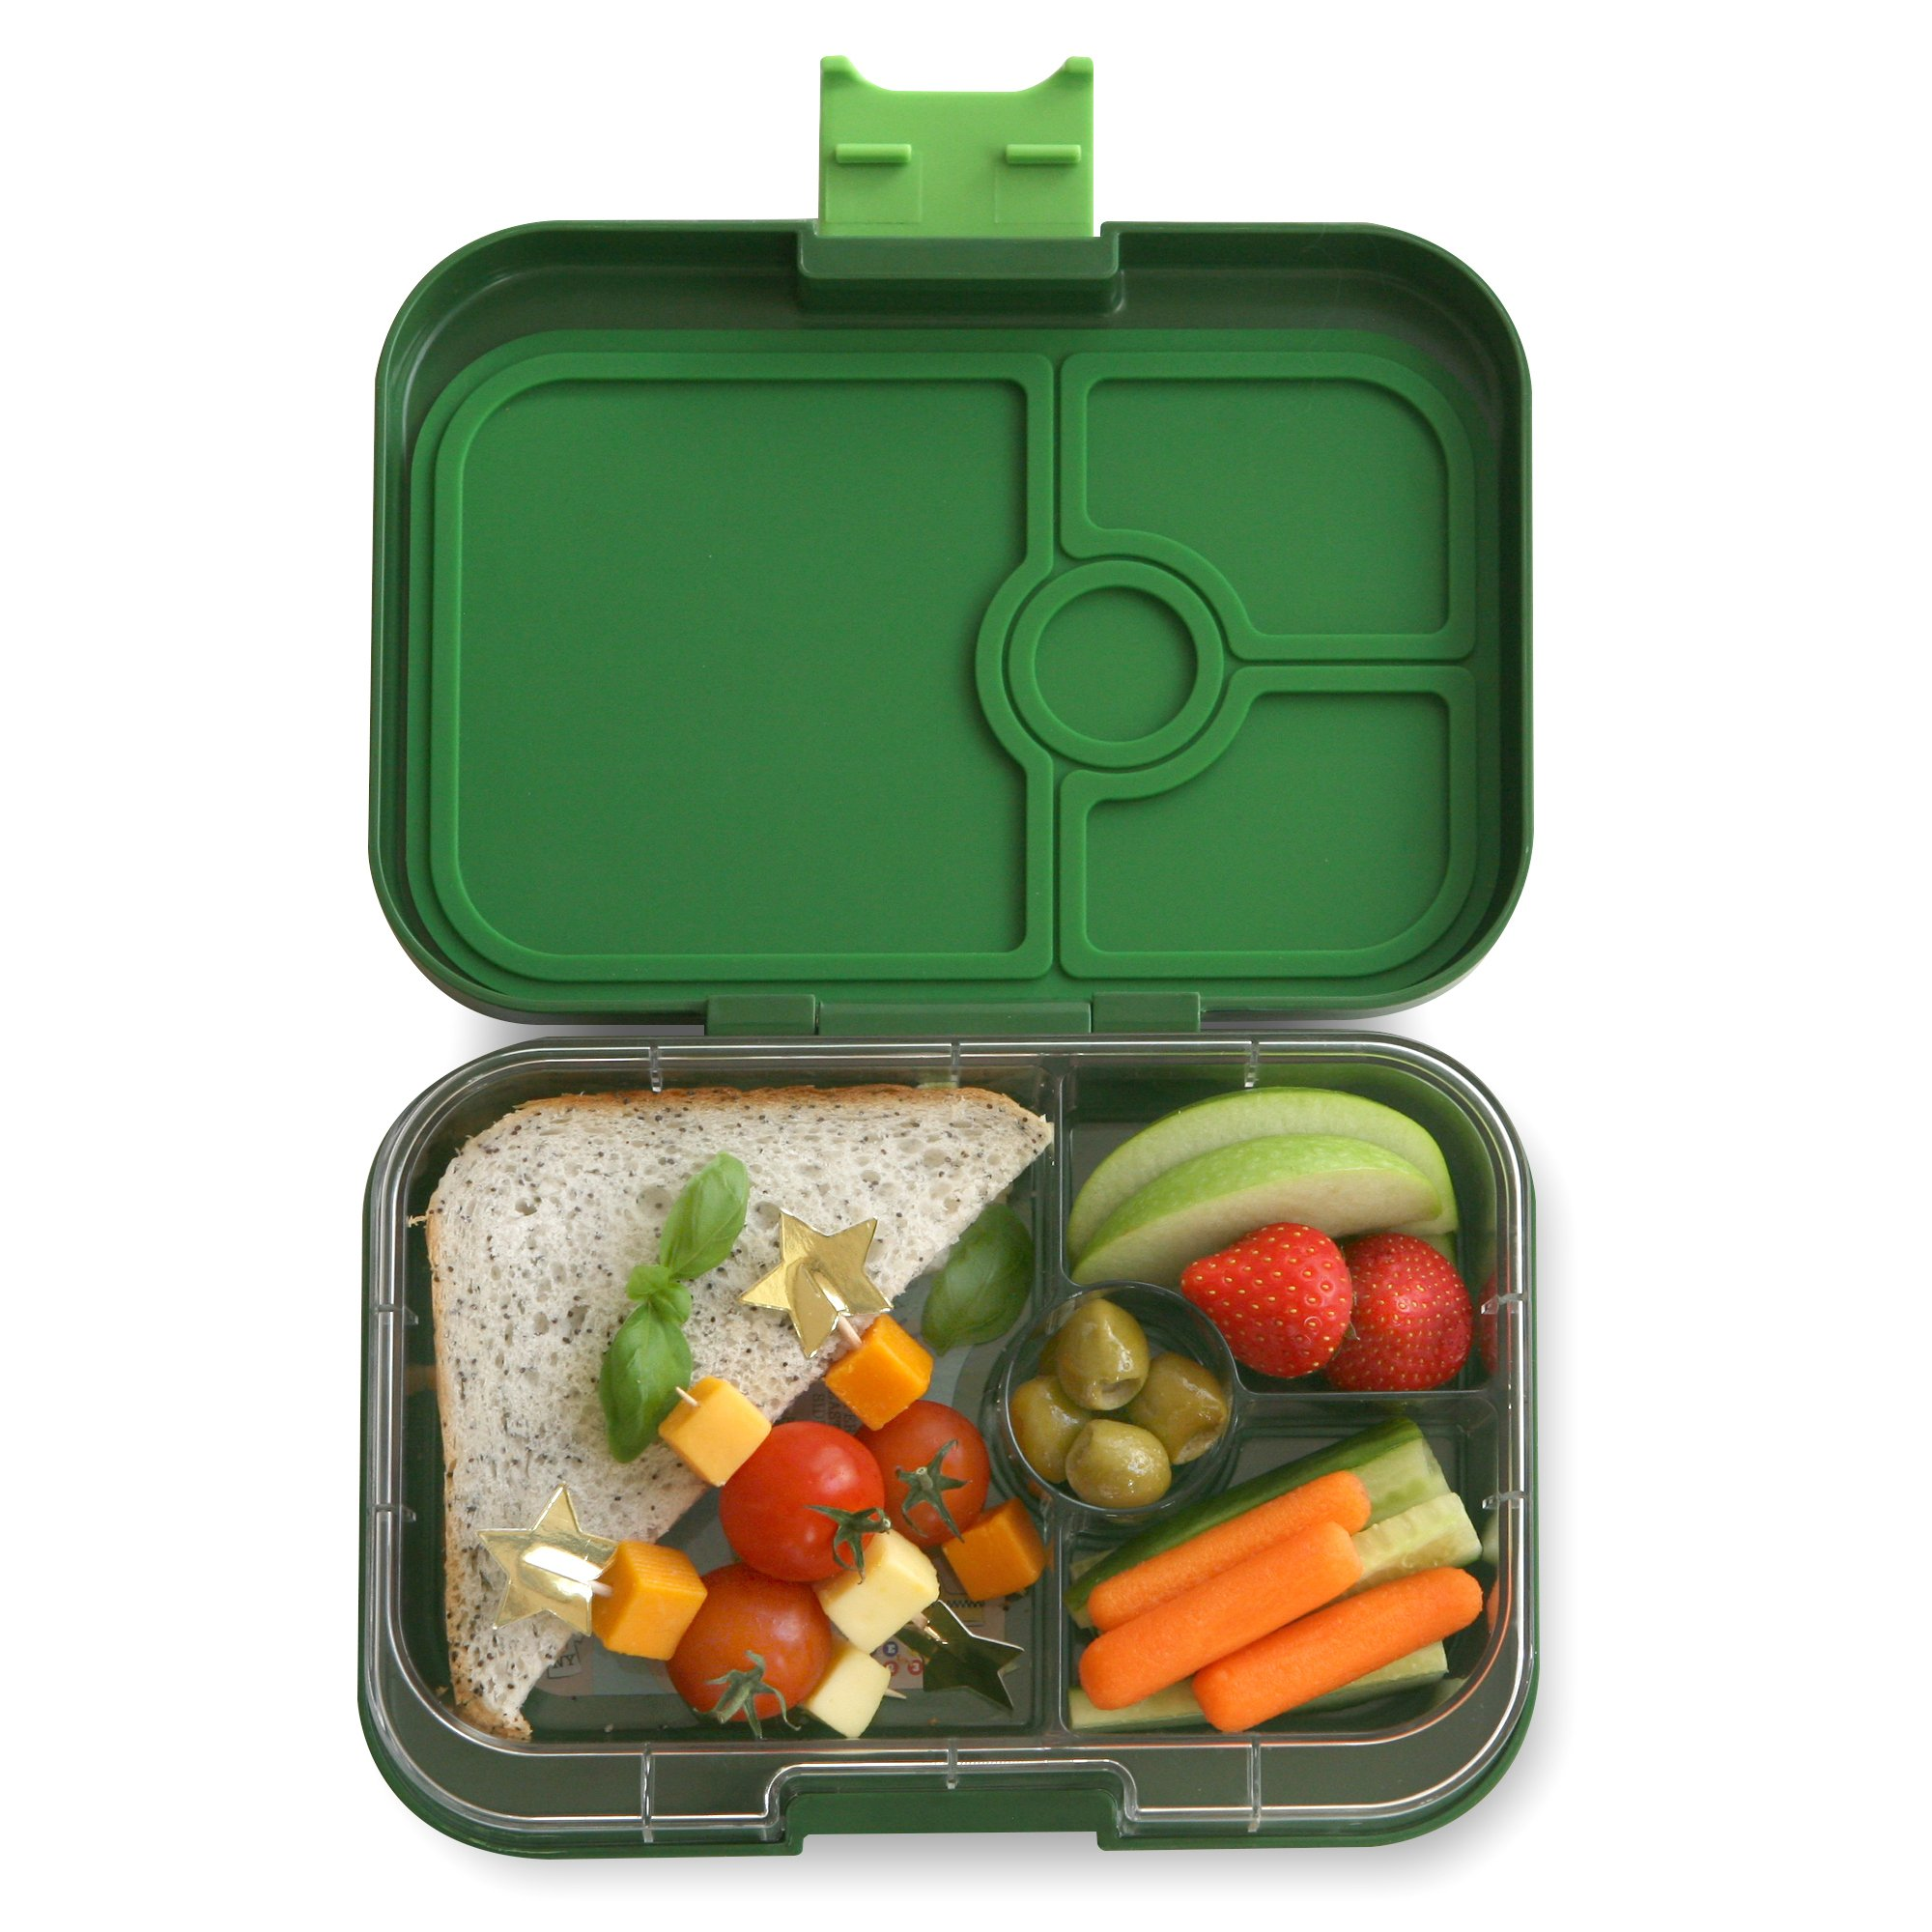 YUMBOX Panino (Brooklyn Green) Leakproof Bento Lunch Box Container for Kids & Adults